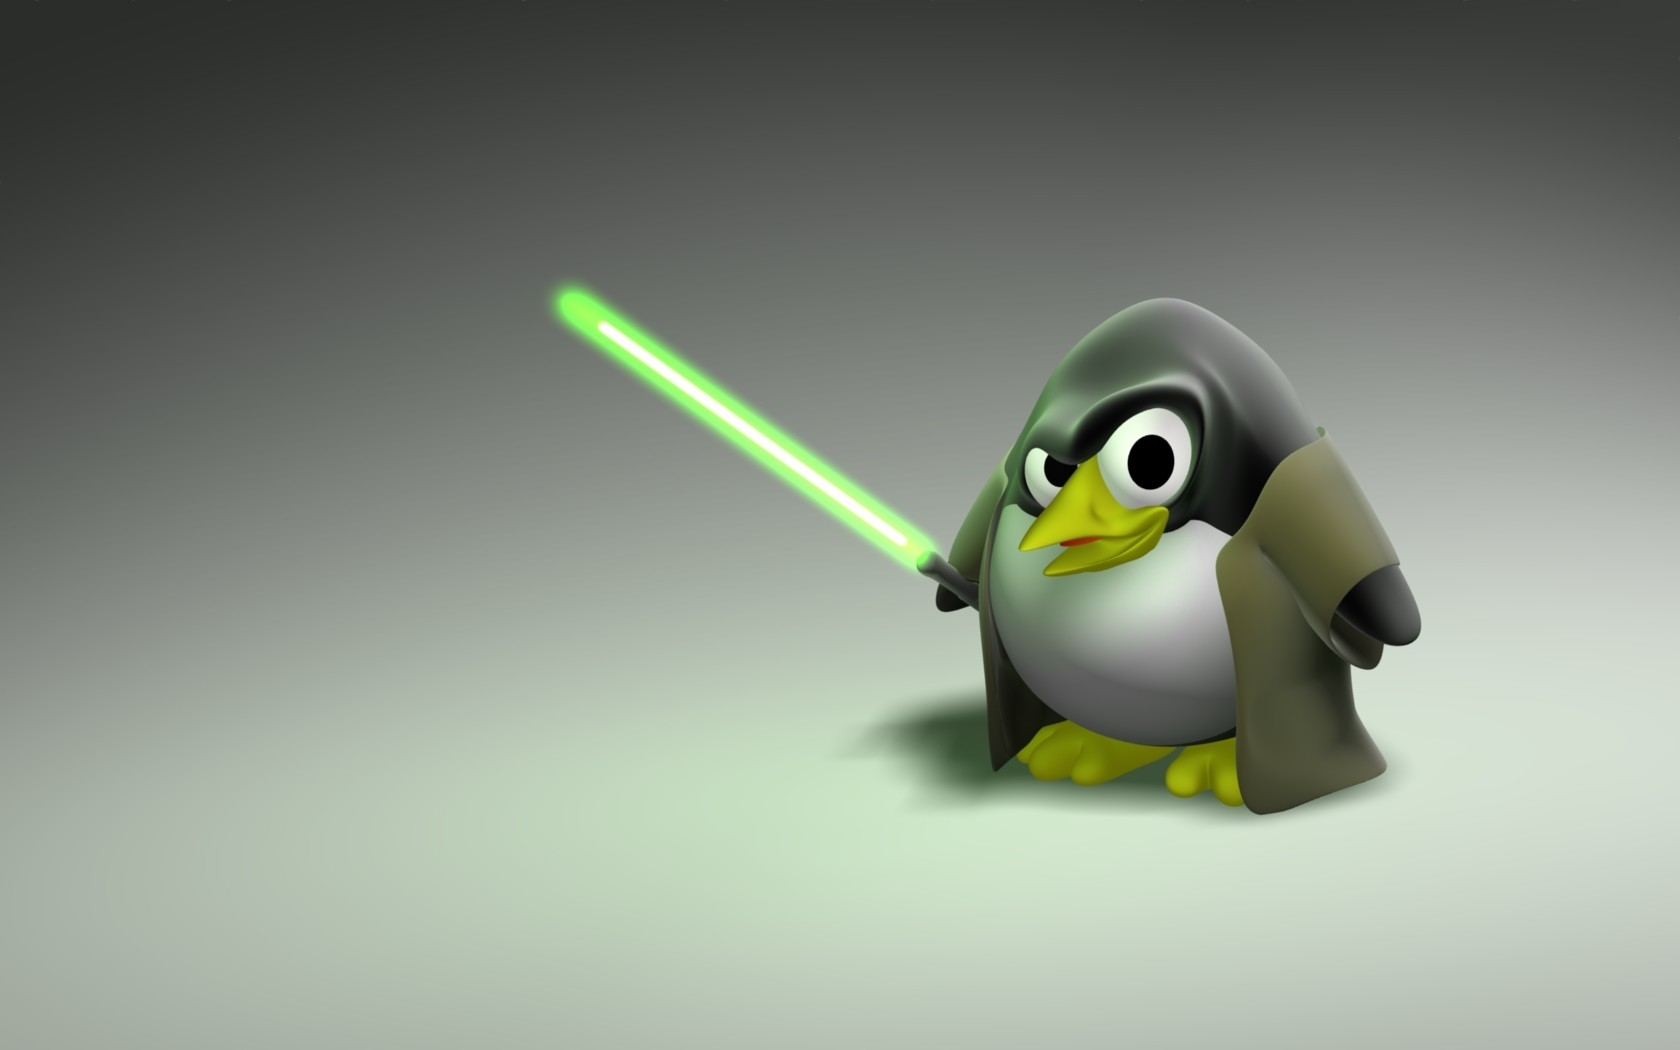 Linux tux jedi HD Wallpaper